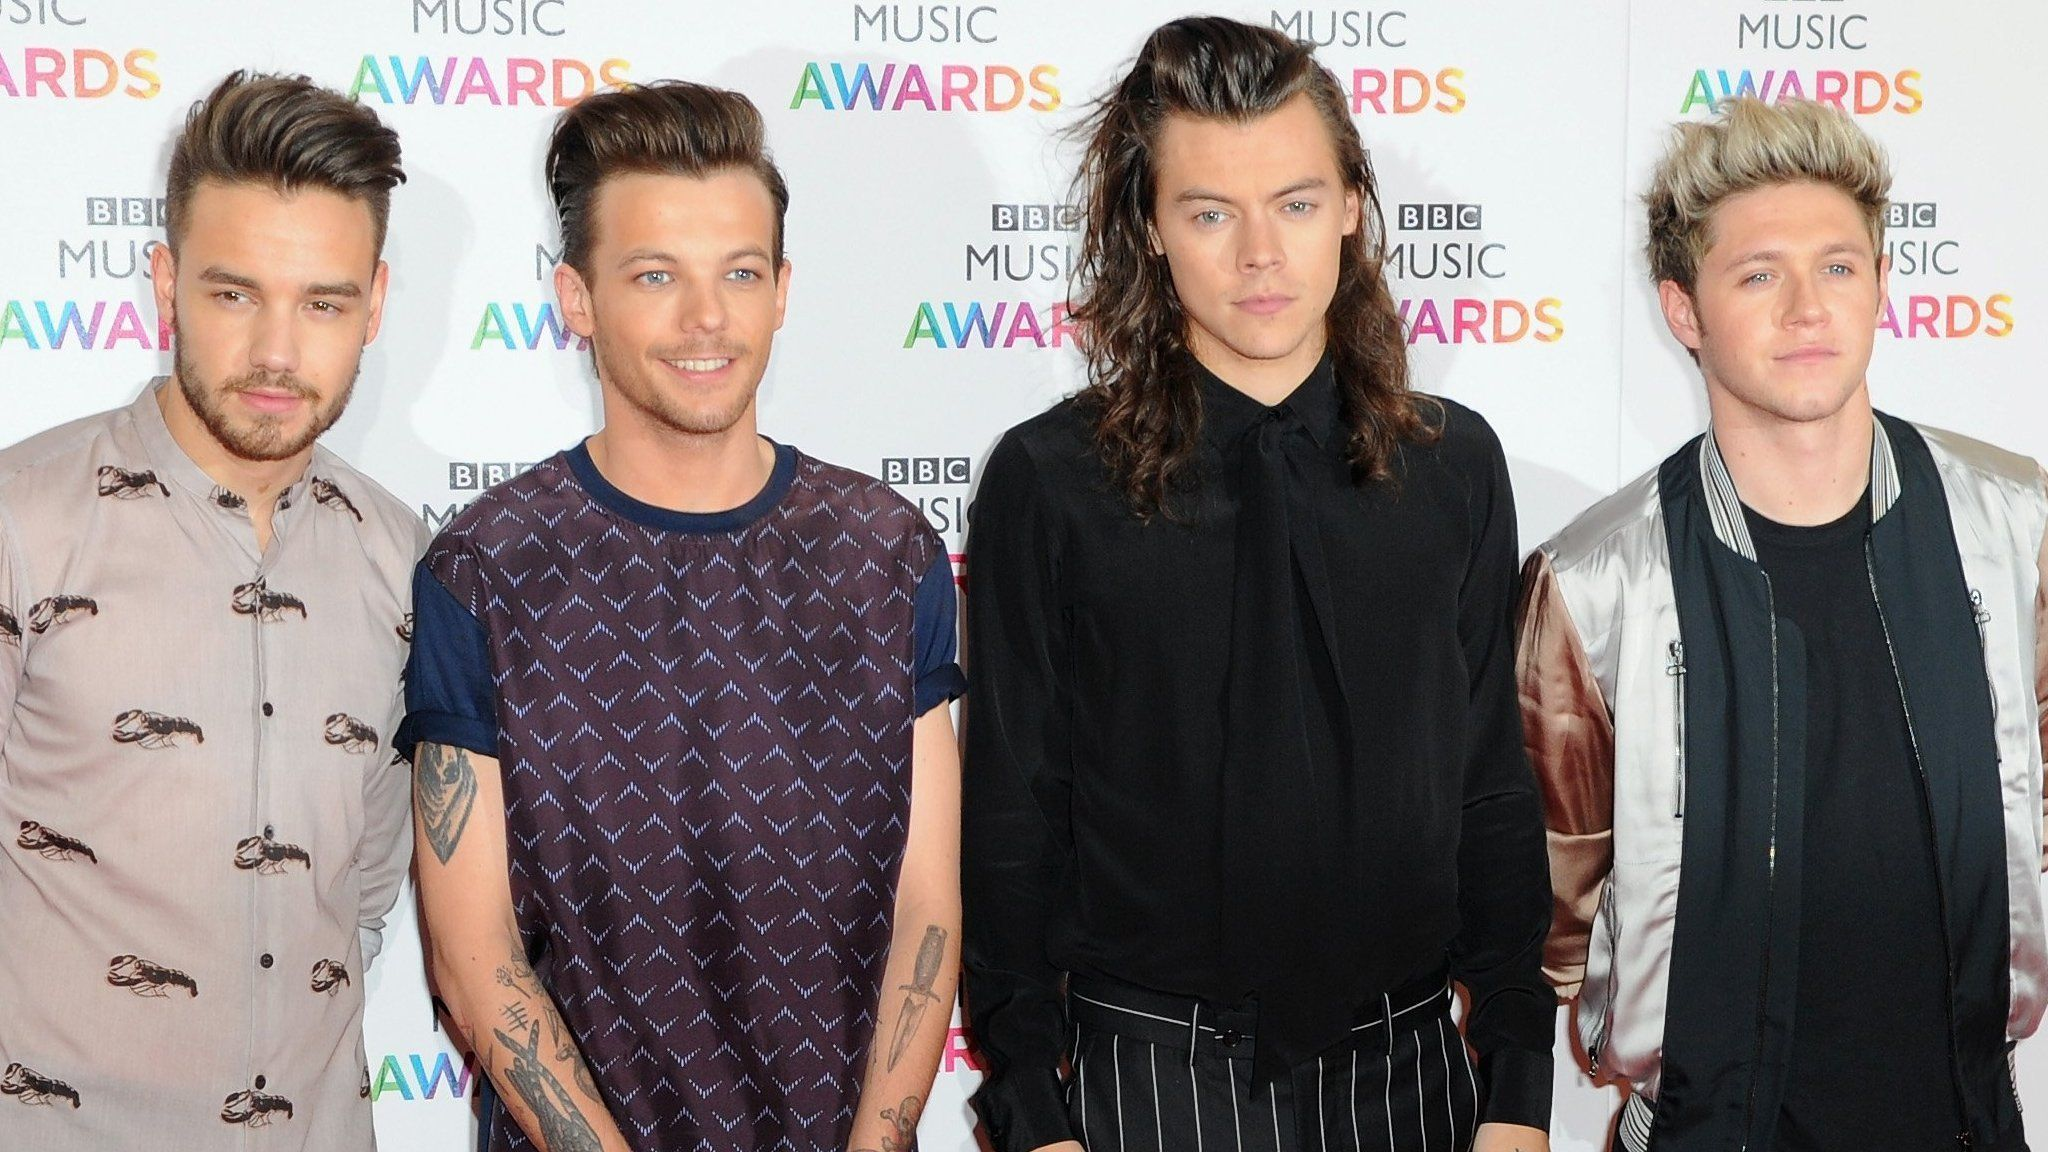 Liam Payne: There's 'definitely a chance 1D will reunite